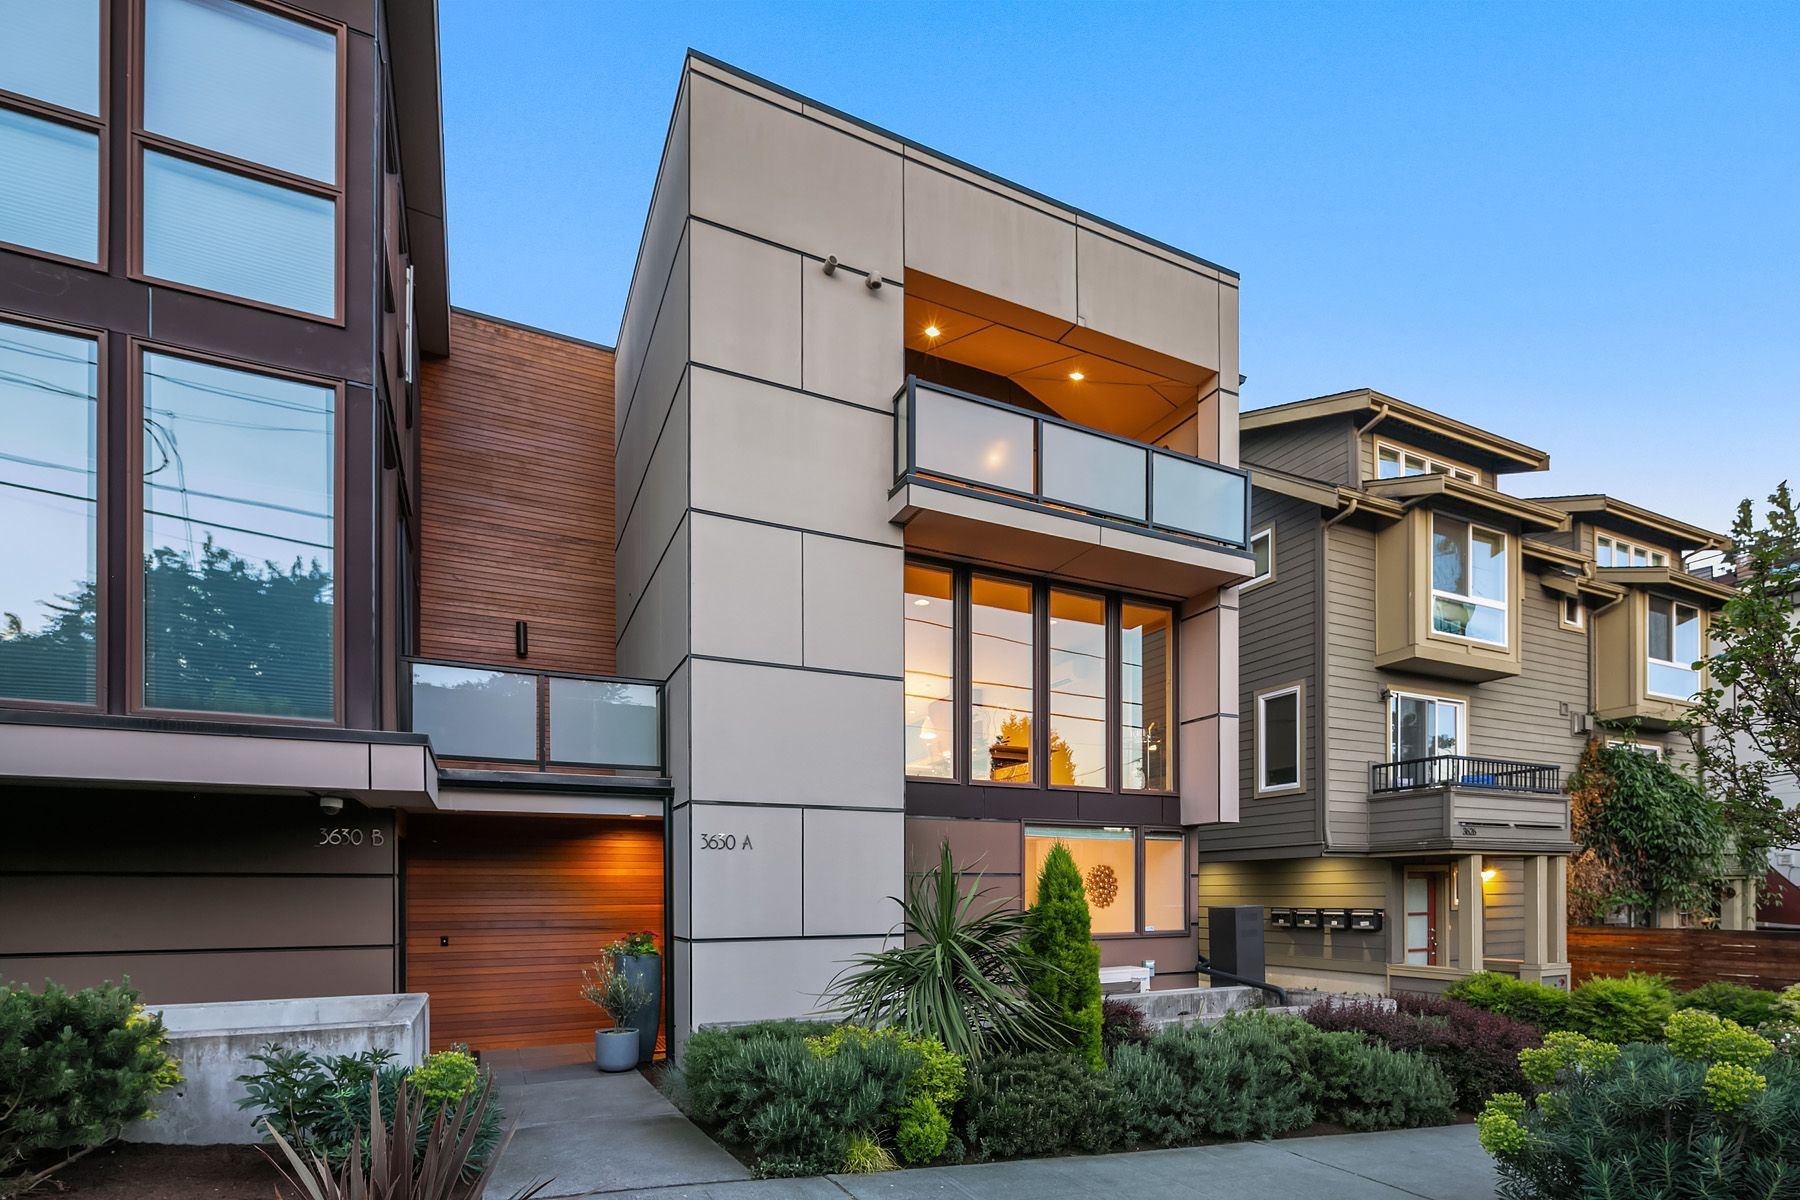 3630 Palatine Ave N Unit A, Seattle | $925,000 | Listed and Sold